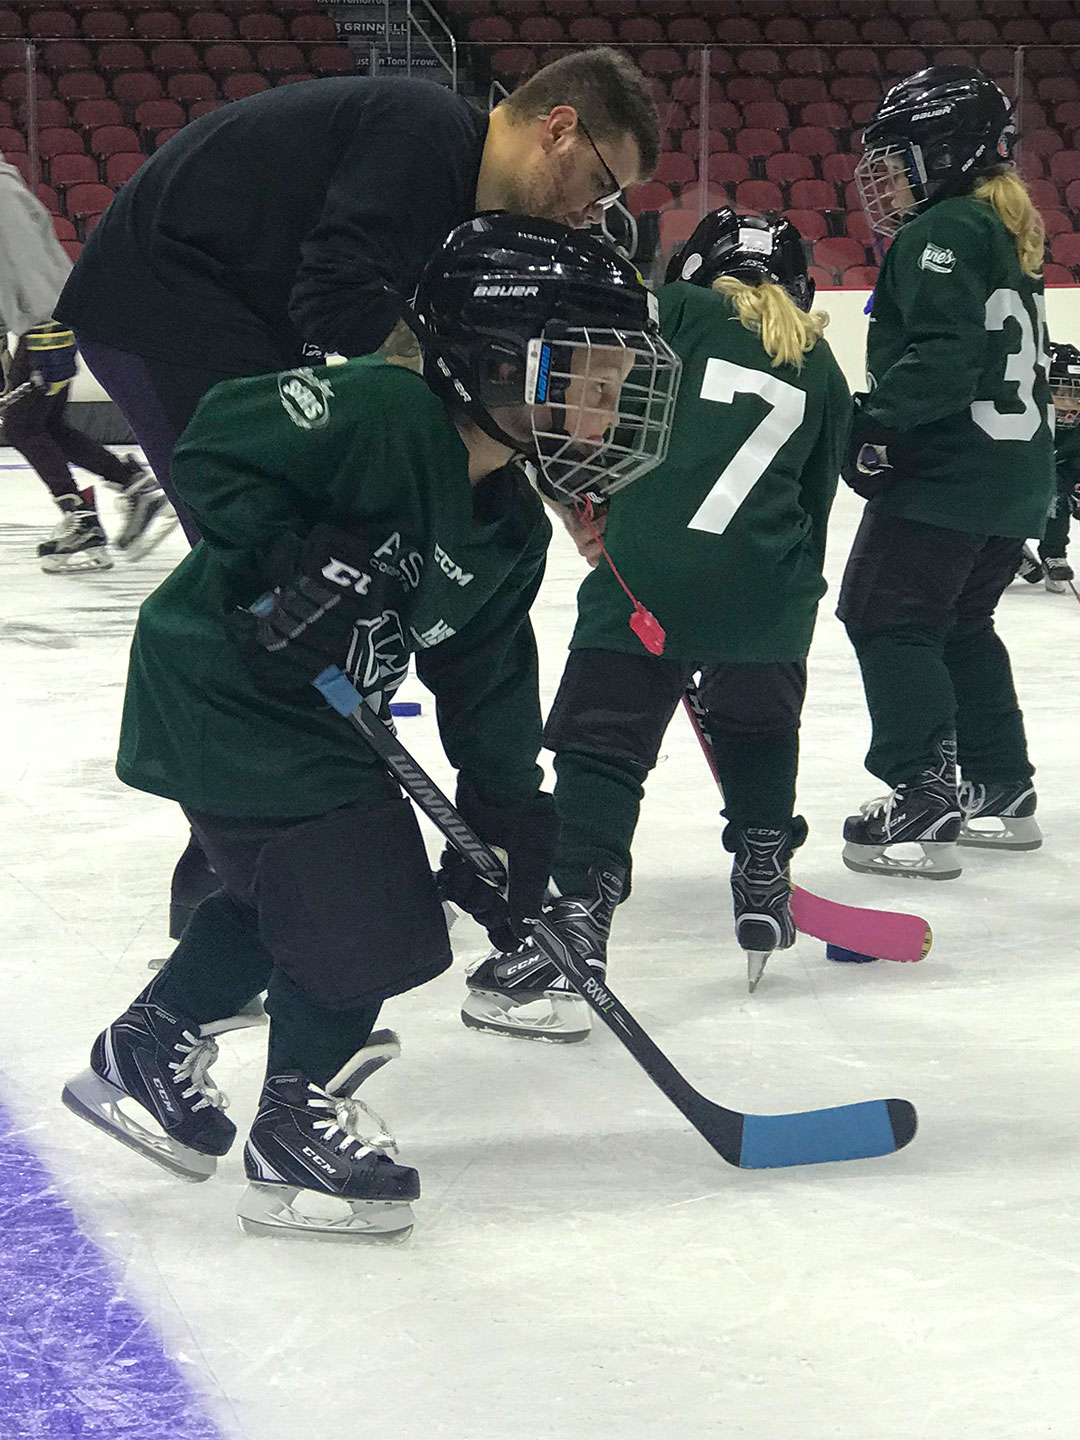 Young boy picking up some speed on the ice.